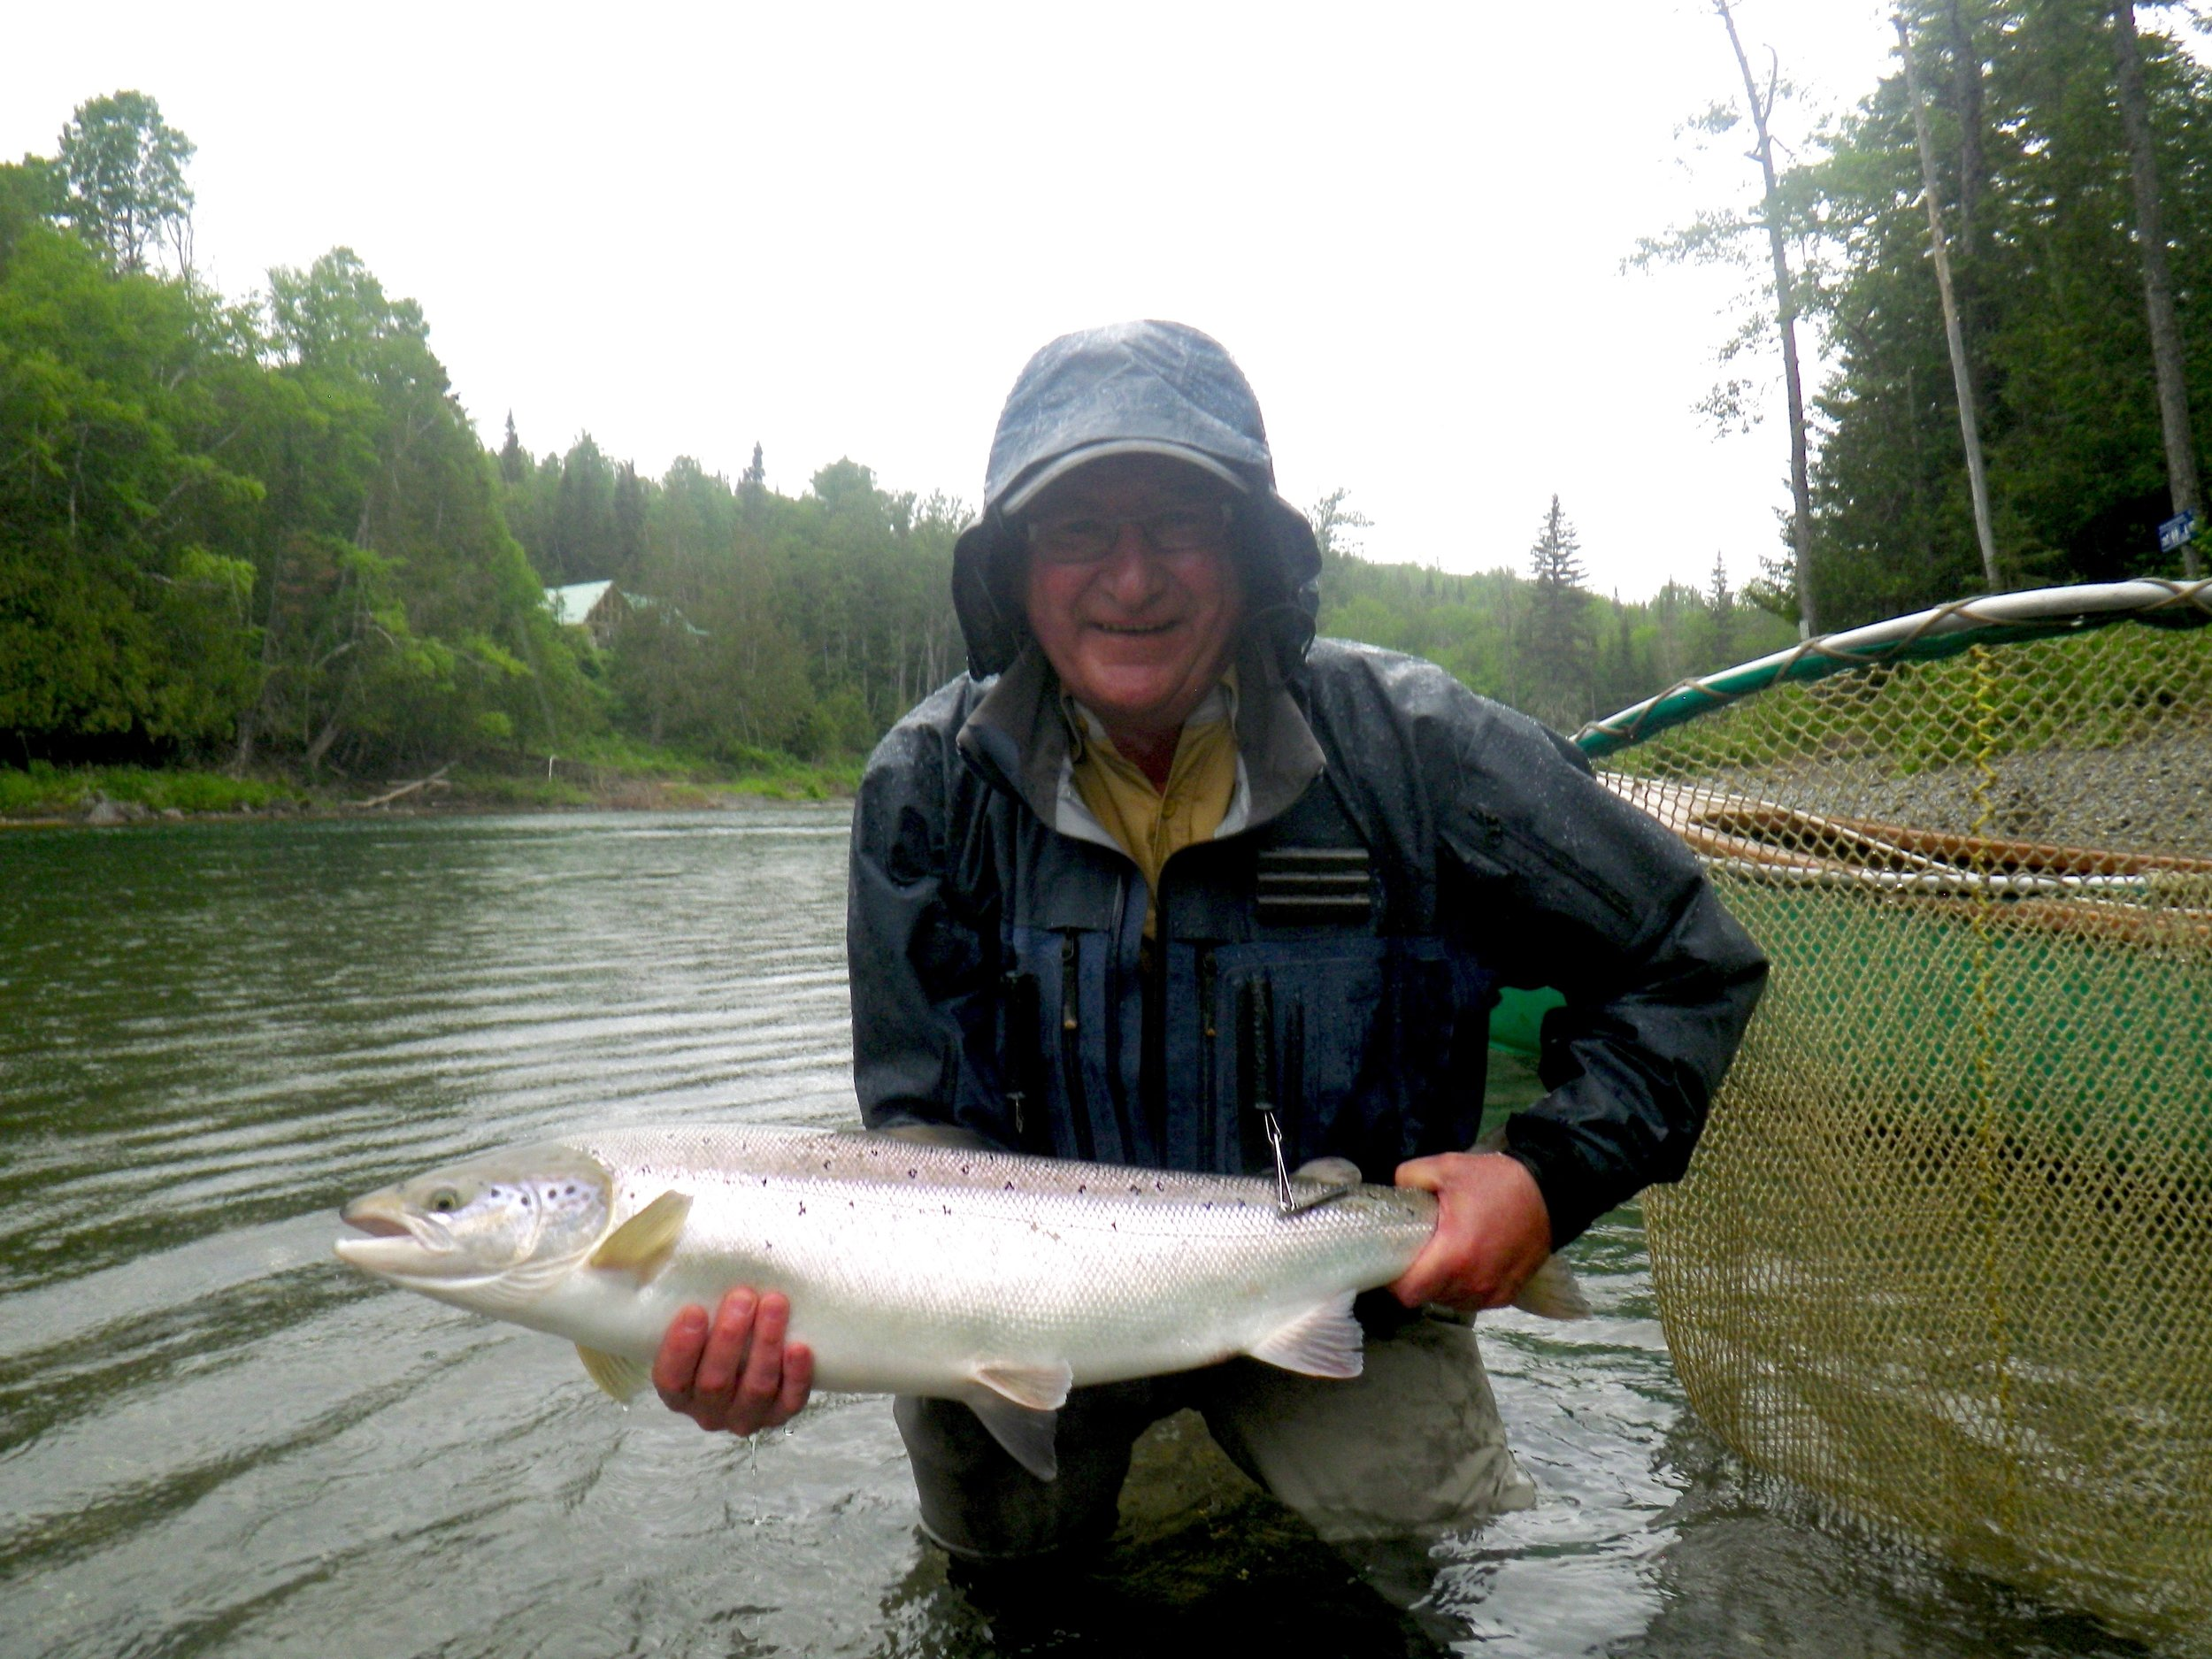 Our good friend Paul Scott with yet another one, Paul was high rod with five landed in three days. Welldon Paul !